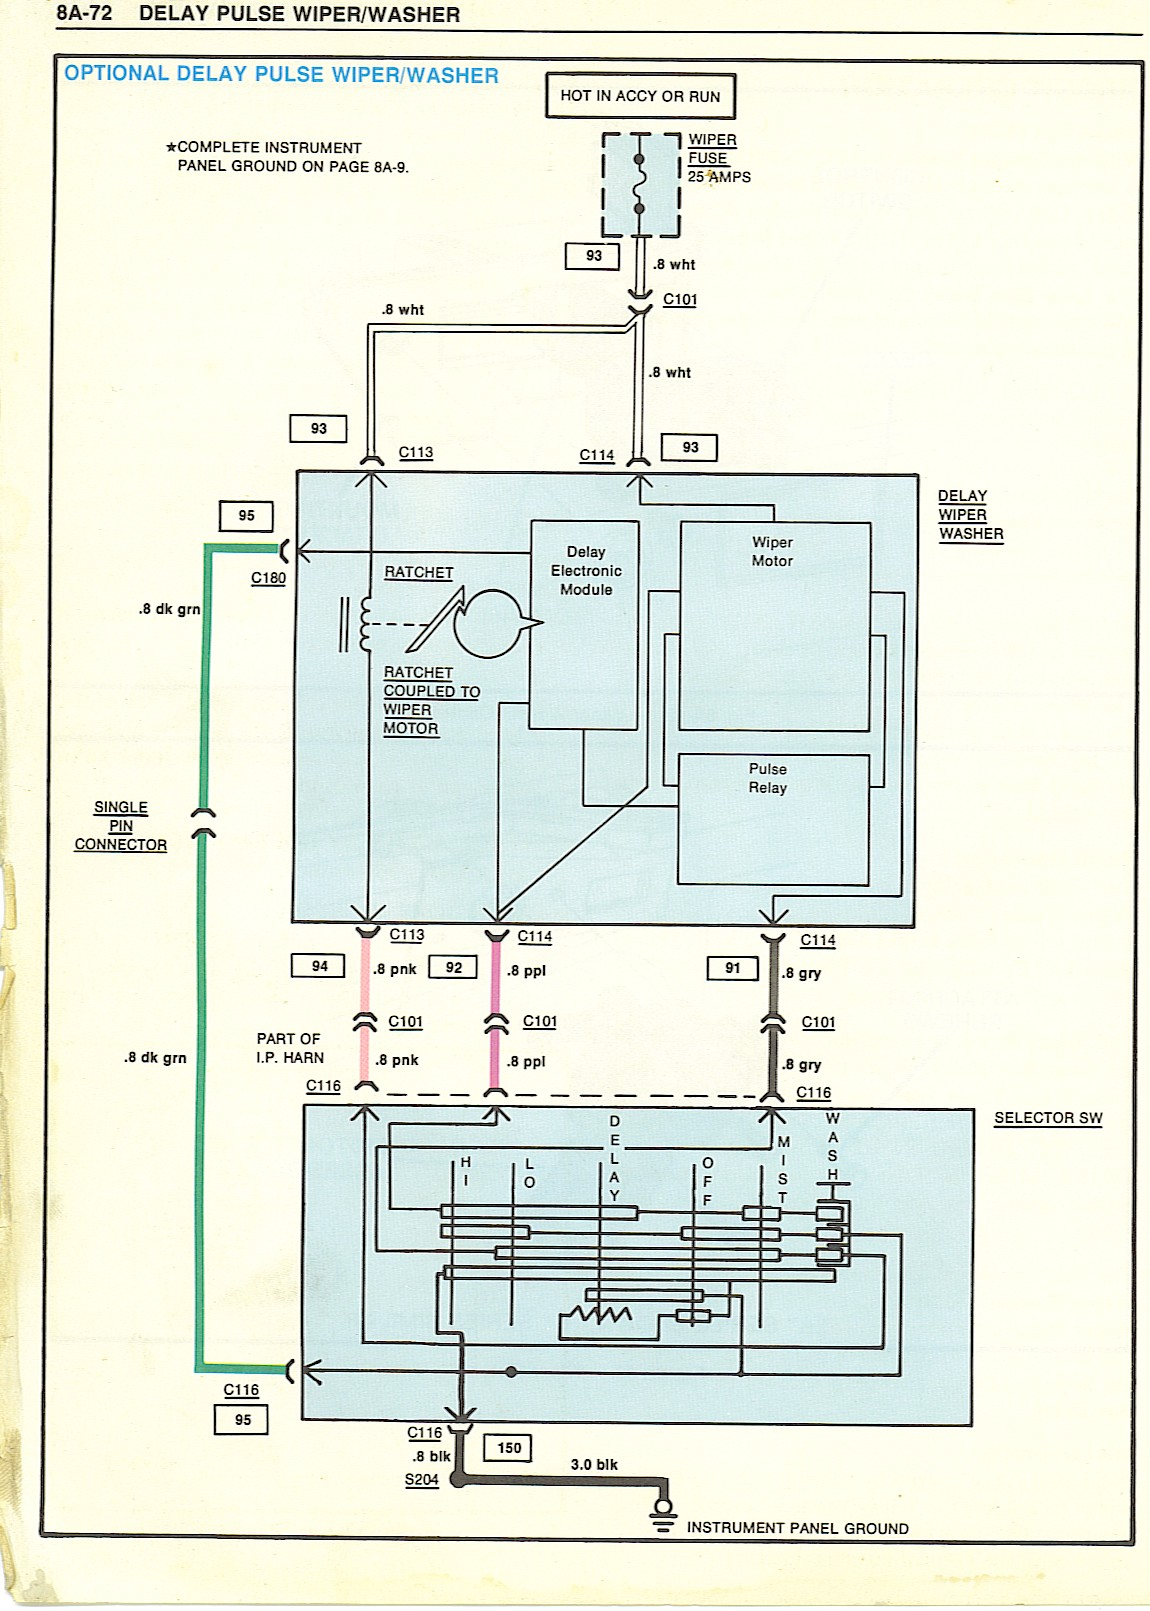 1987 Chevy Truck Wiper Motor Wiring Diagram - 15.awe.capecoral ...